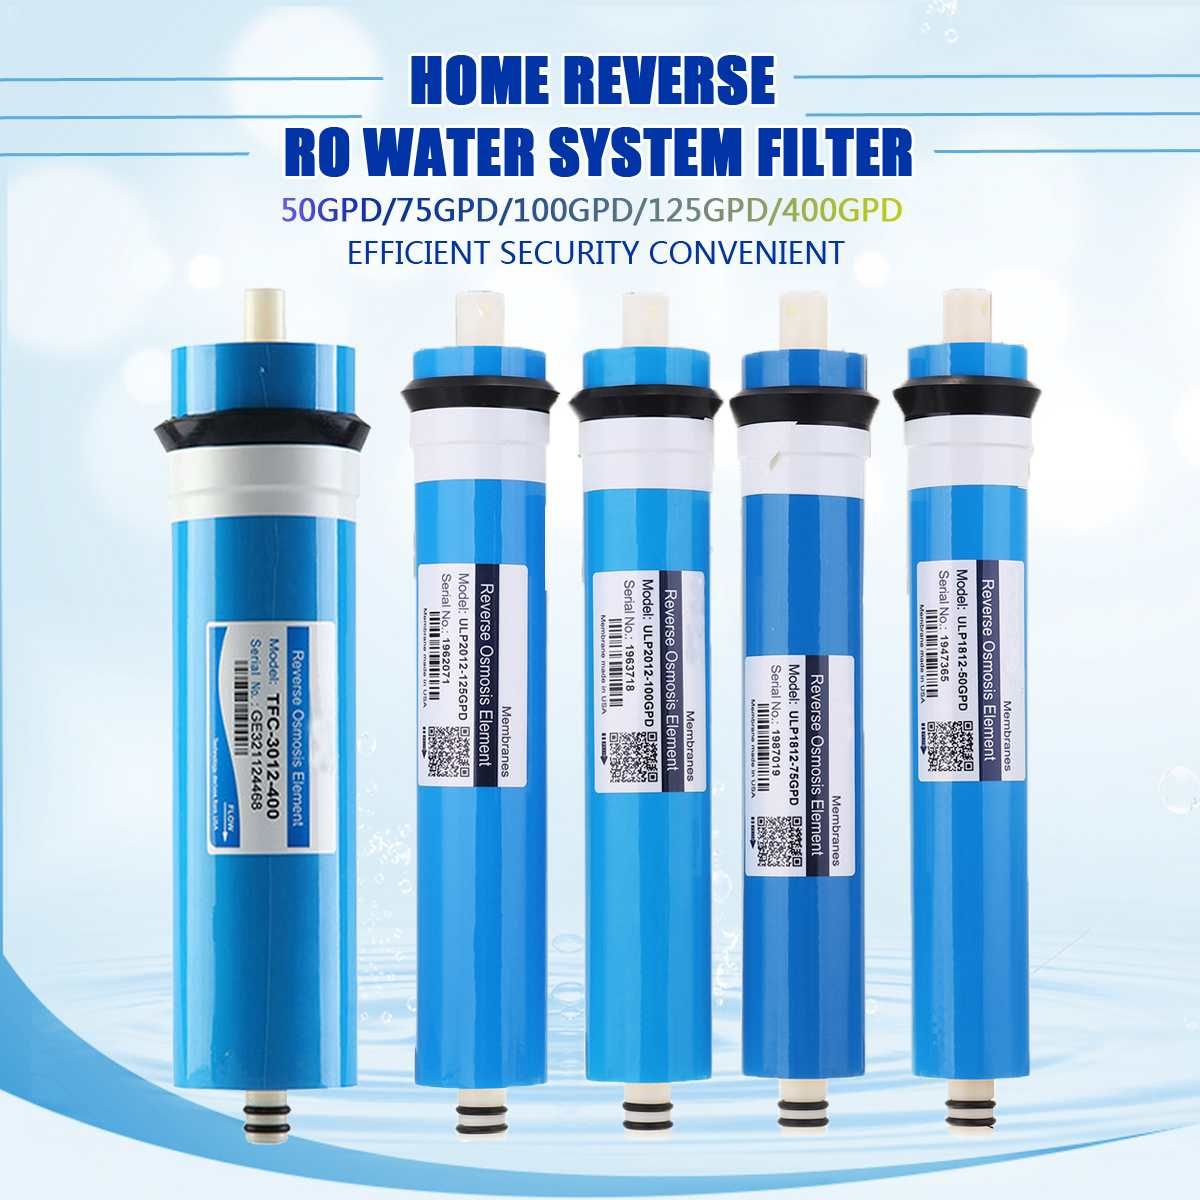 50/75/100/125/400GPD Home Kitchen Reverse Osmosis RO Membrane Replacement Water System Filter Purifier Water Drinking Treatment50/75/100/125/400GPD Home Kitchen Reverse Osmosis RO Membrane Replacement Water System Filter Purifier Water Drinking Treatment